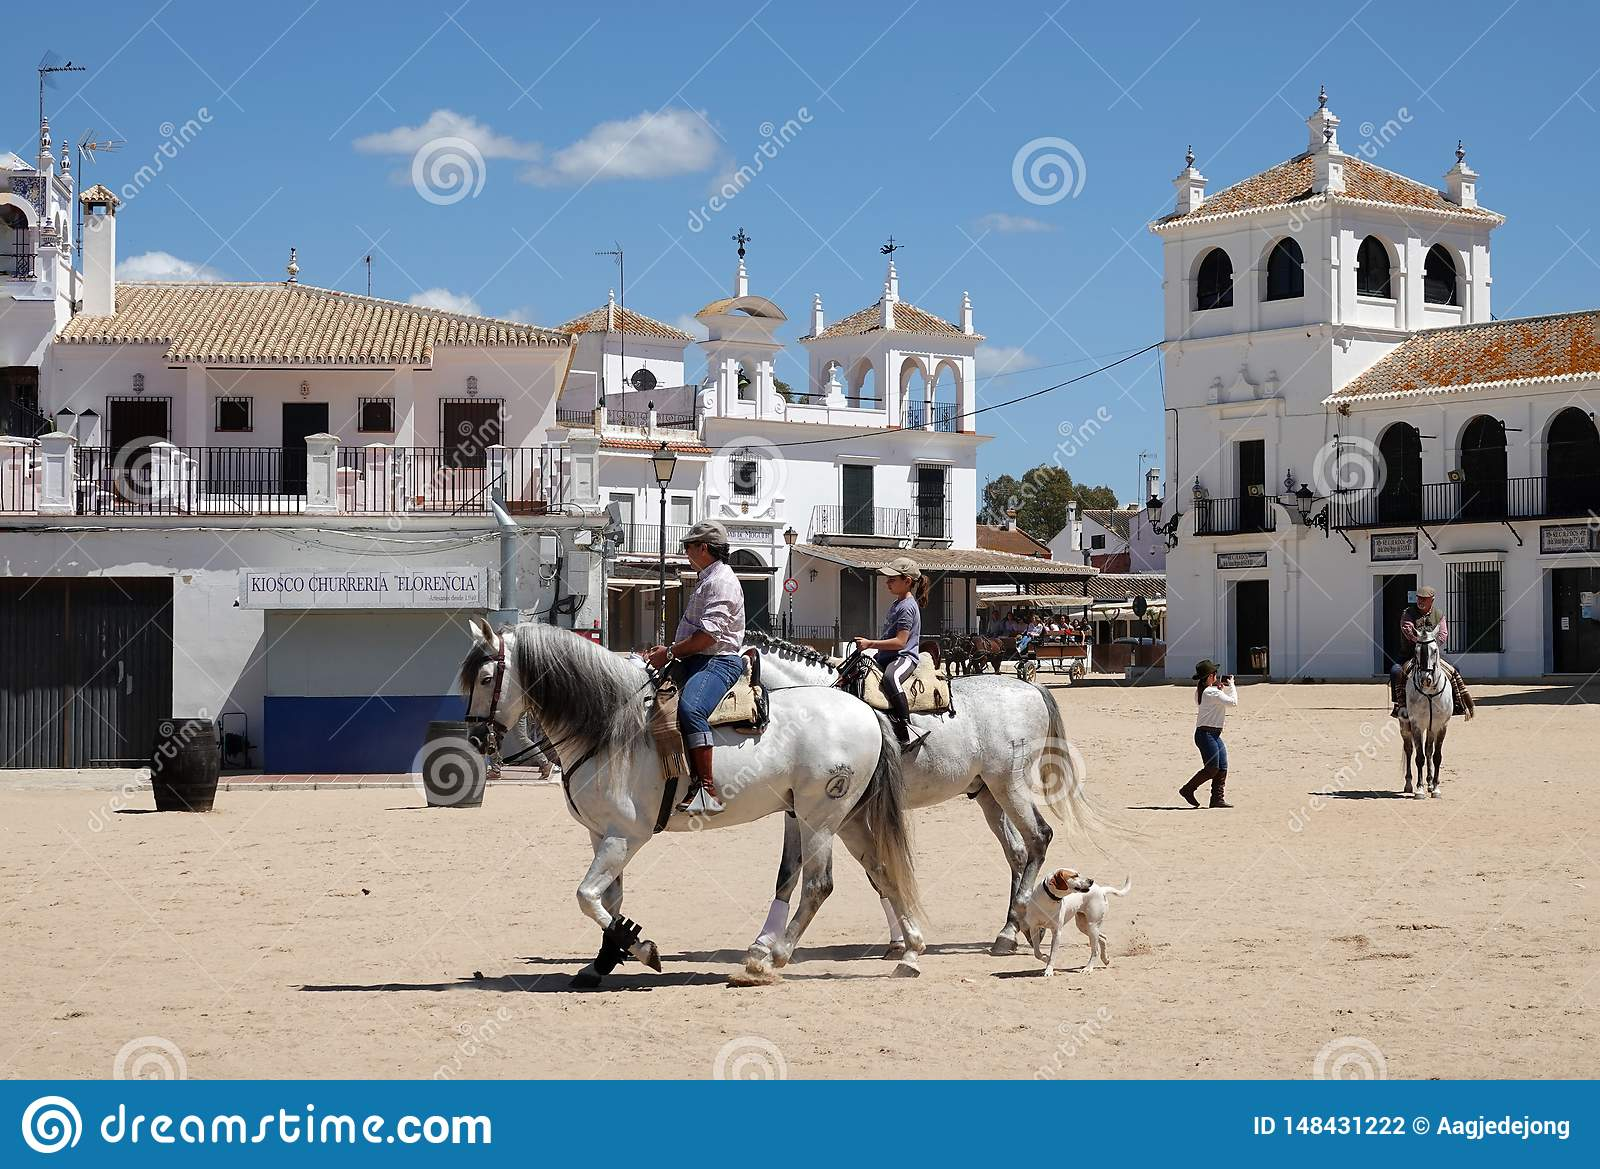 Horse Riding In Western Town El Rocio In Andalusia Spain Editorial Photography Image Of Largest Justed 148431222